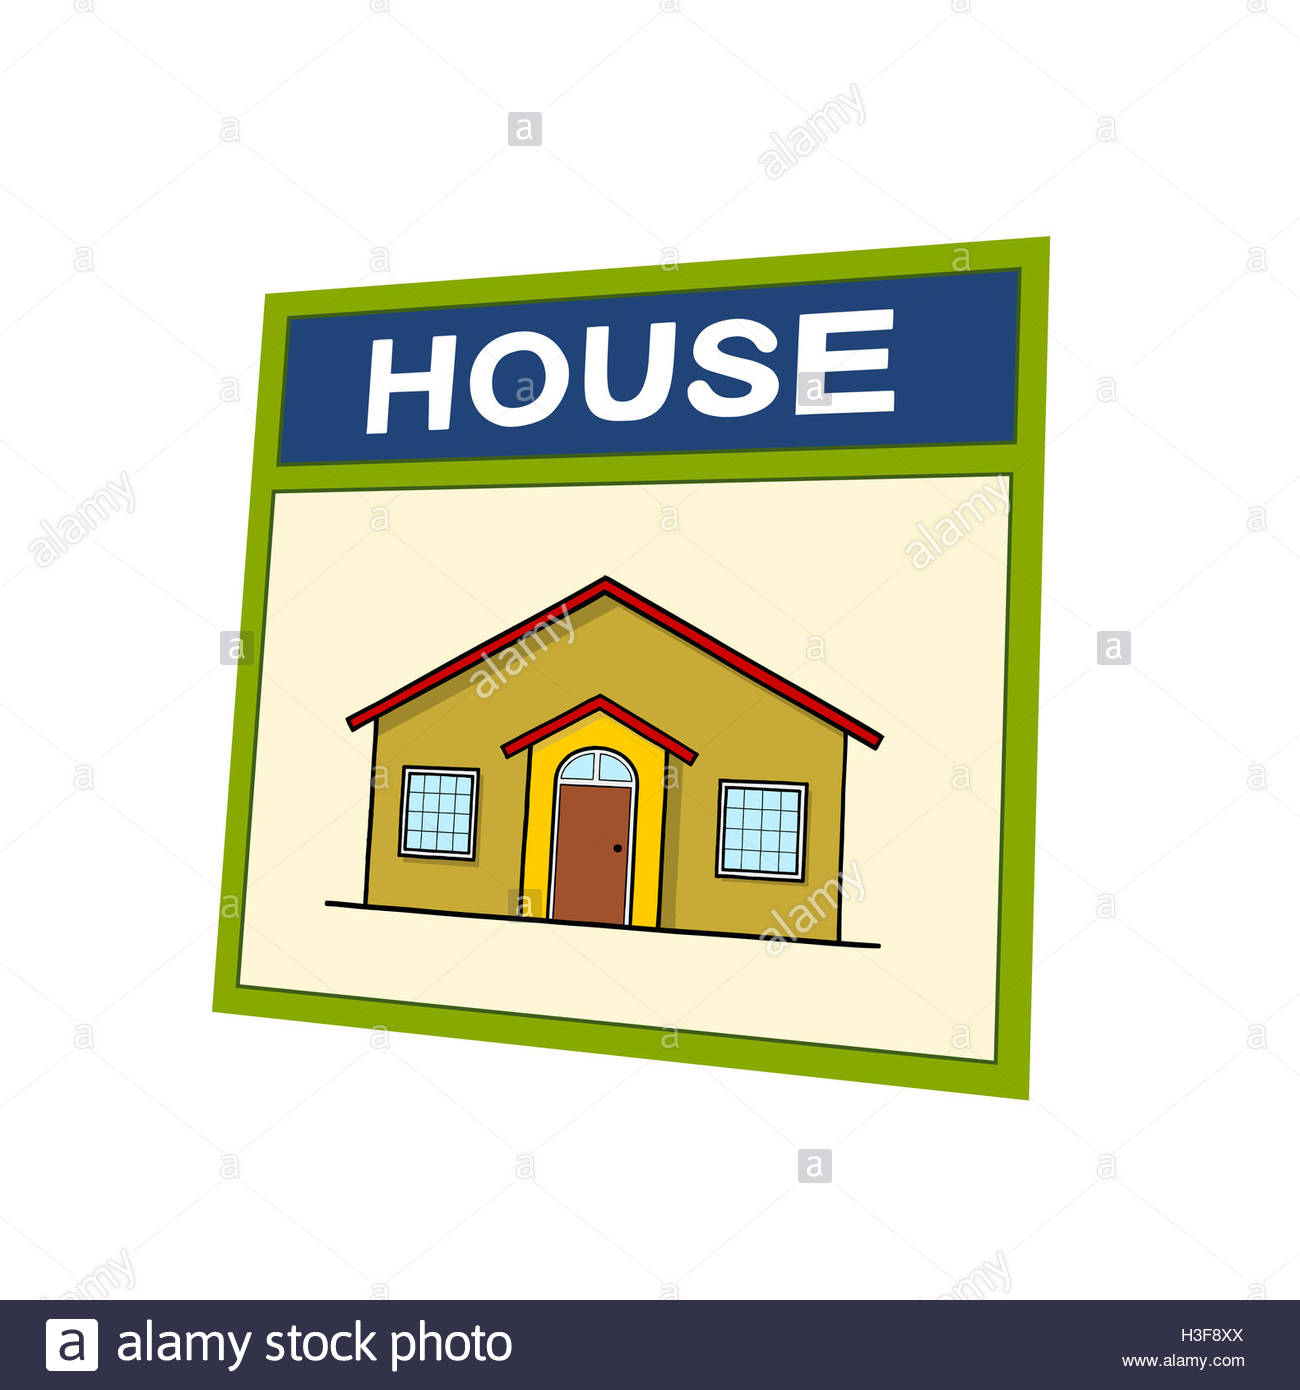 house drawing house word vocabulary learning illustration Stock ...